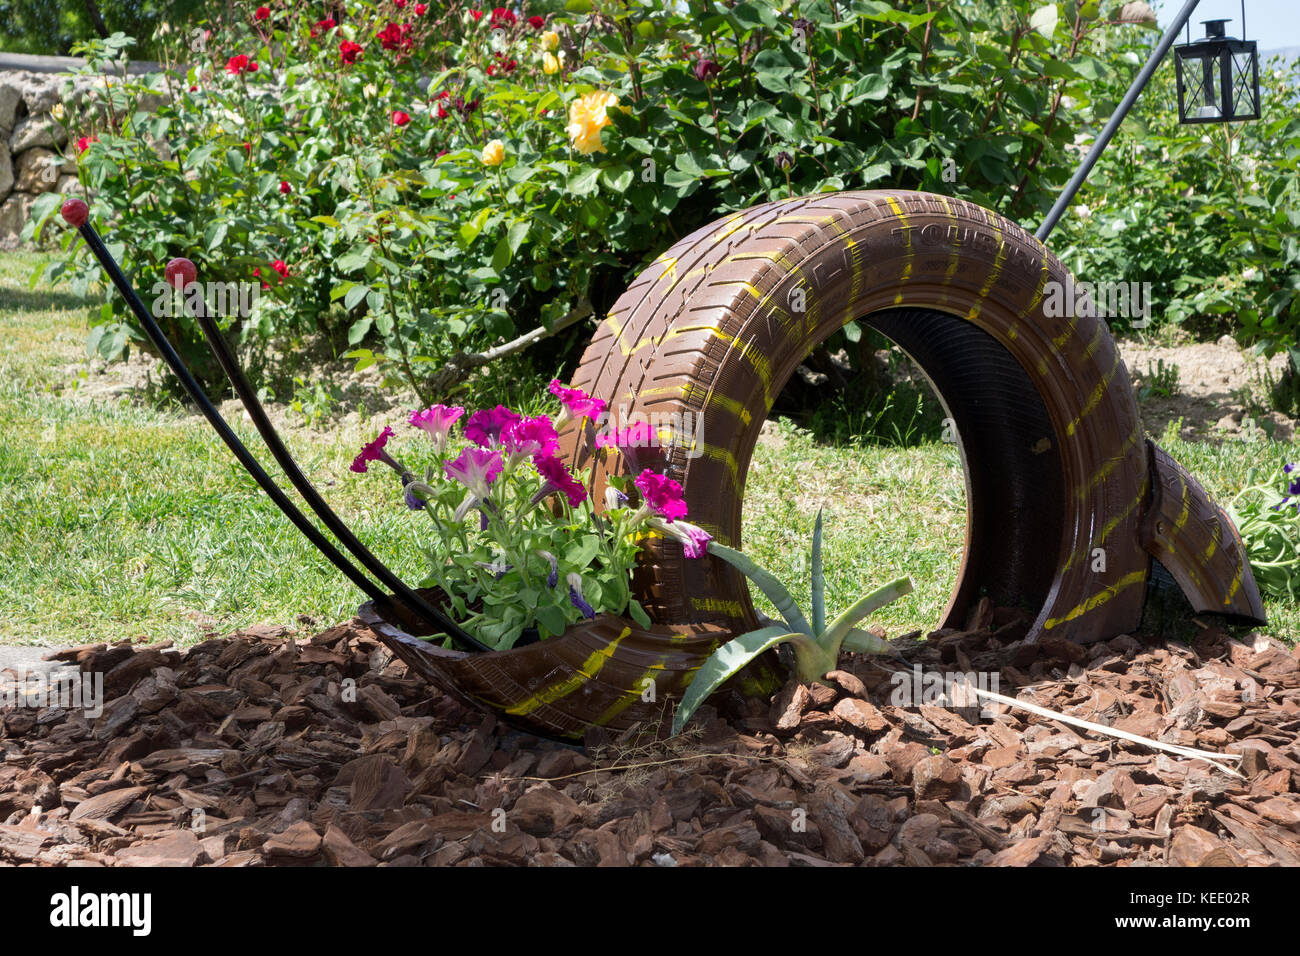 Recycled tyre used as flowerpot - Stock Image